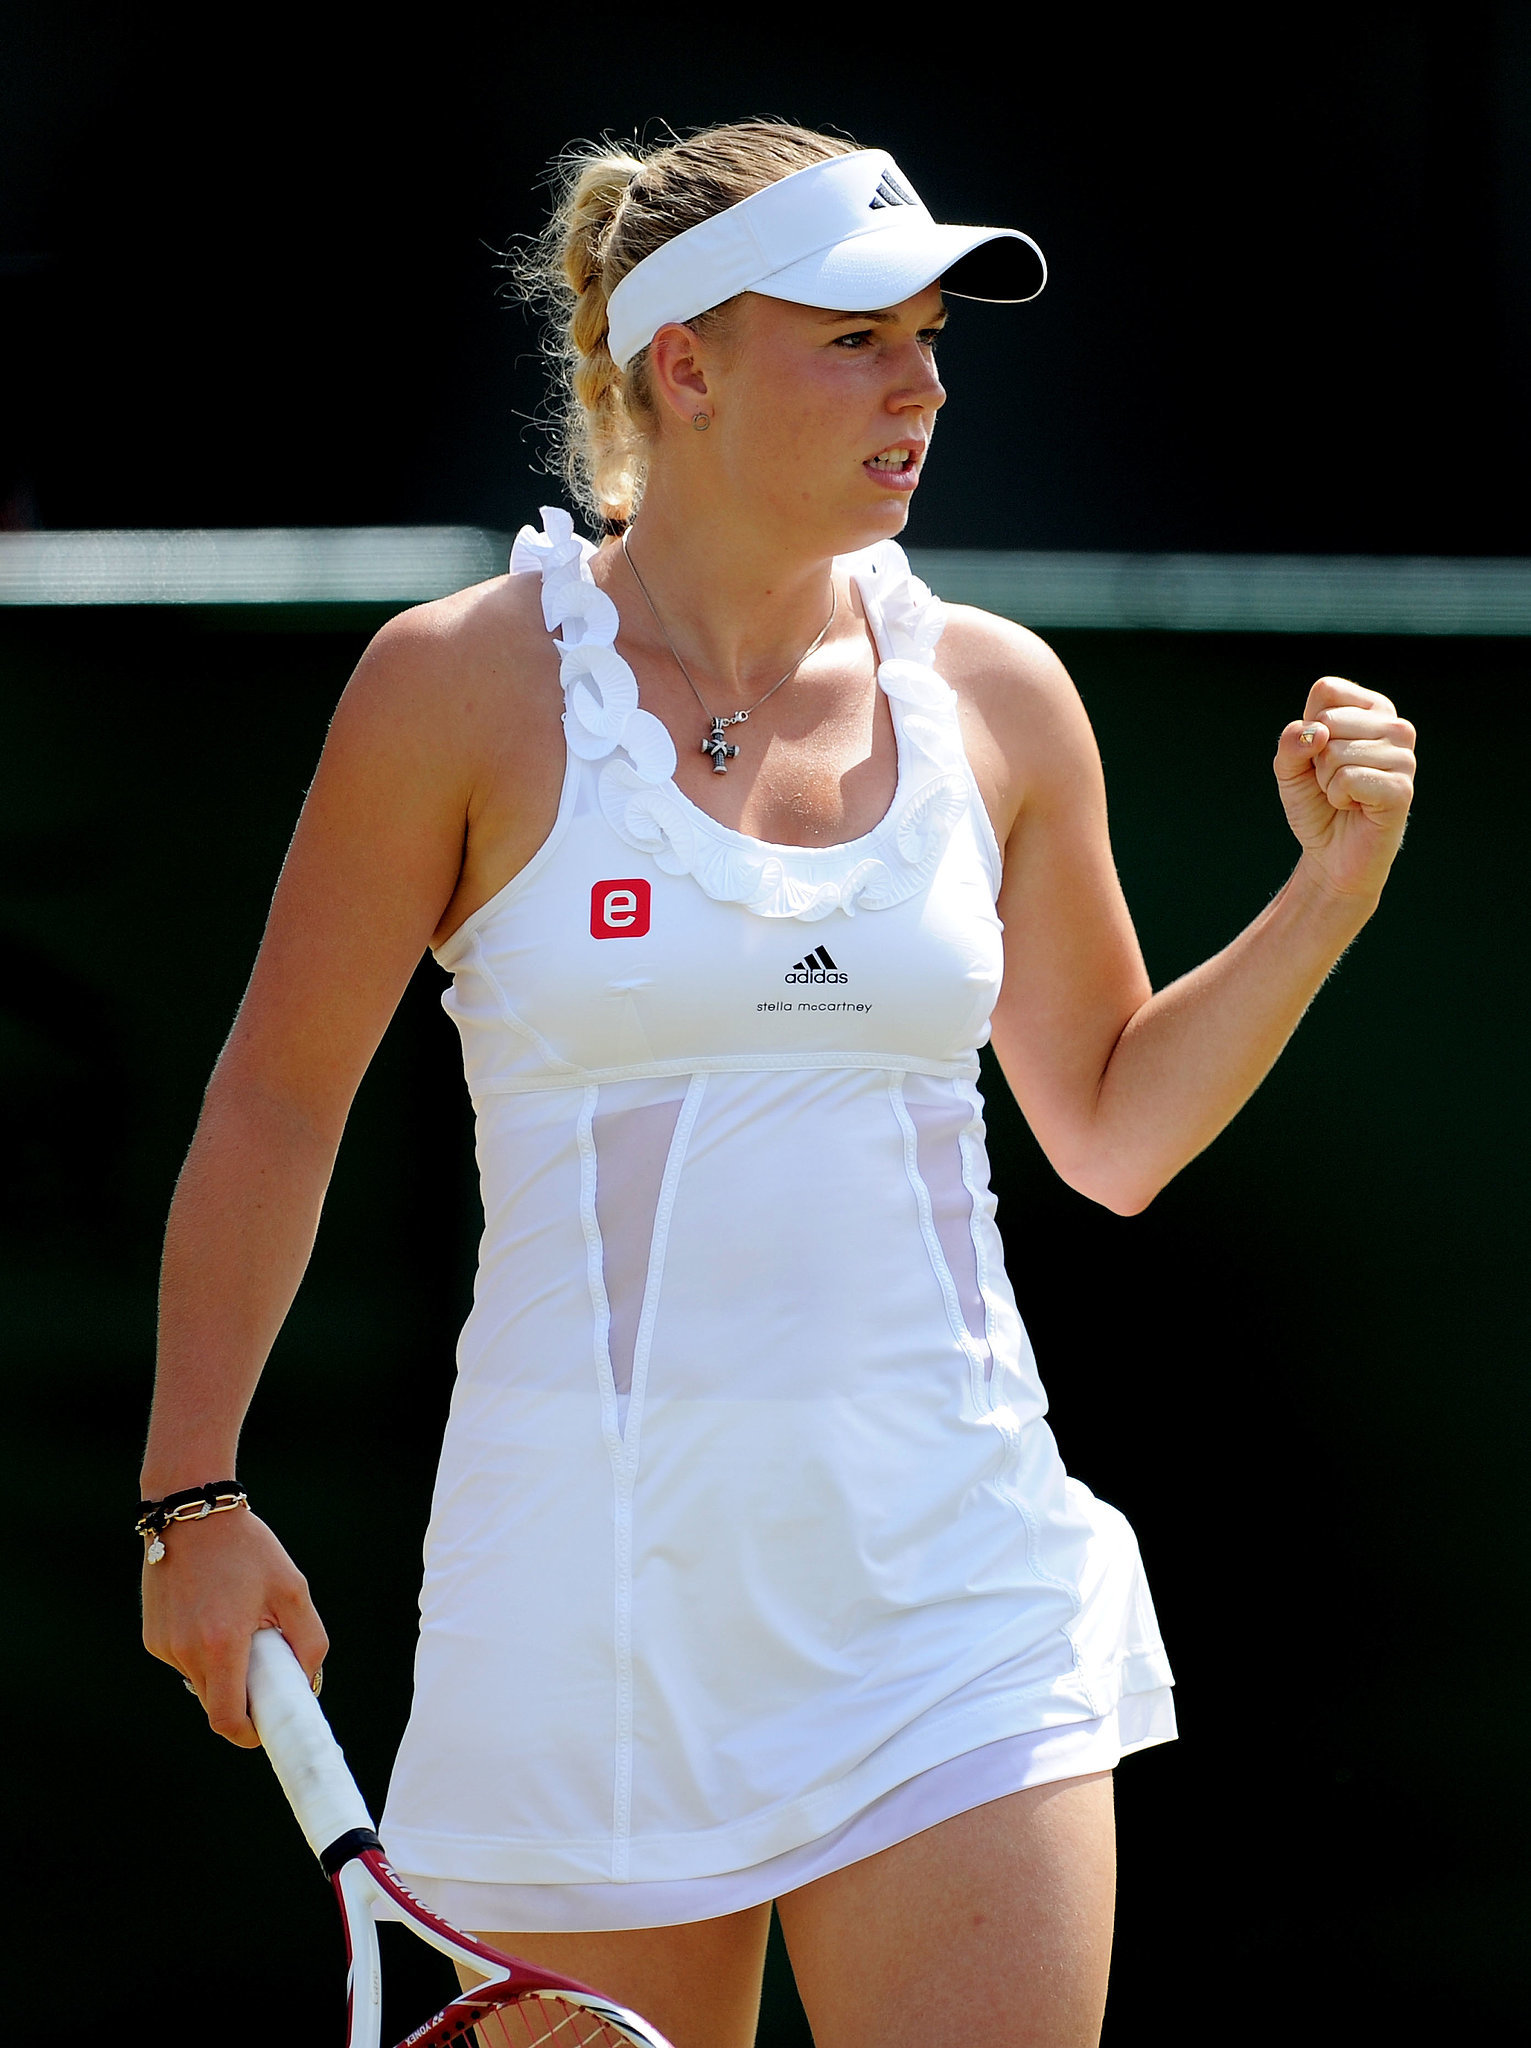 Caroline Wozniacki again showed off Stella McCartney's dress designs, but this time in white. Which one do you prefer?